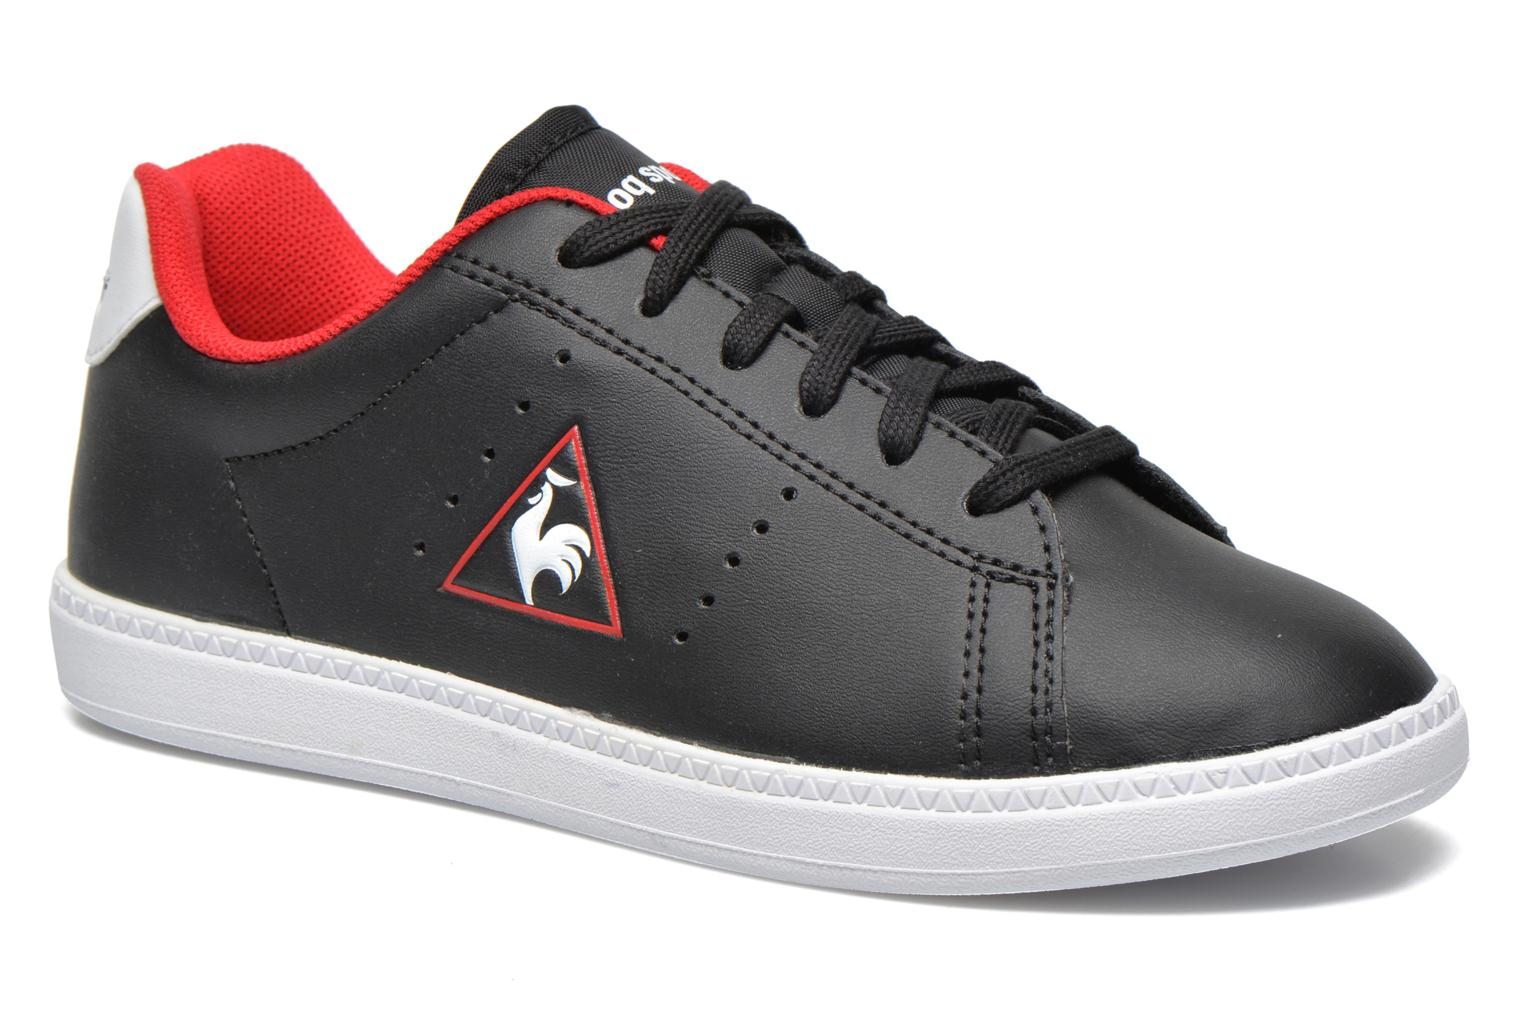 Sneakers Courtone GS Boy by Le Coq Sportif